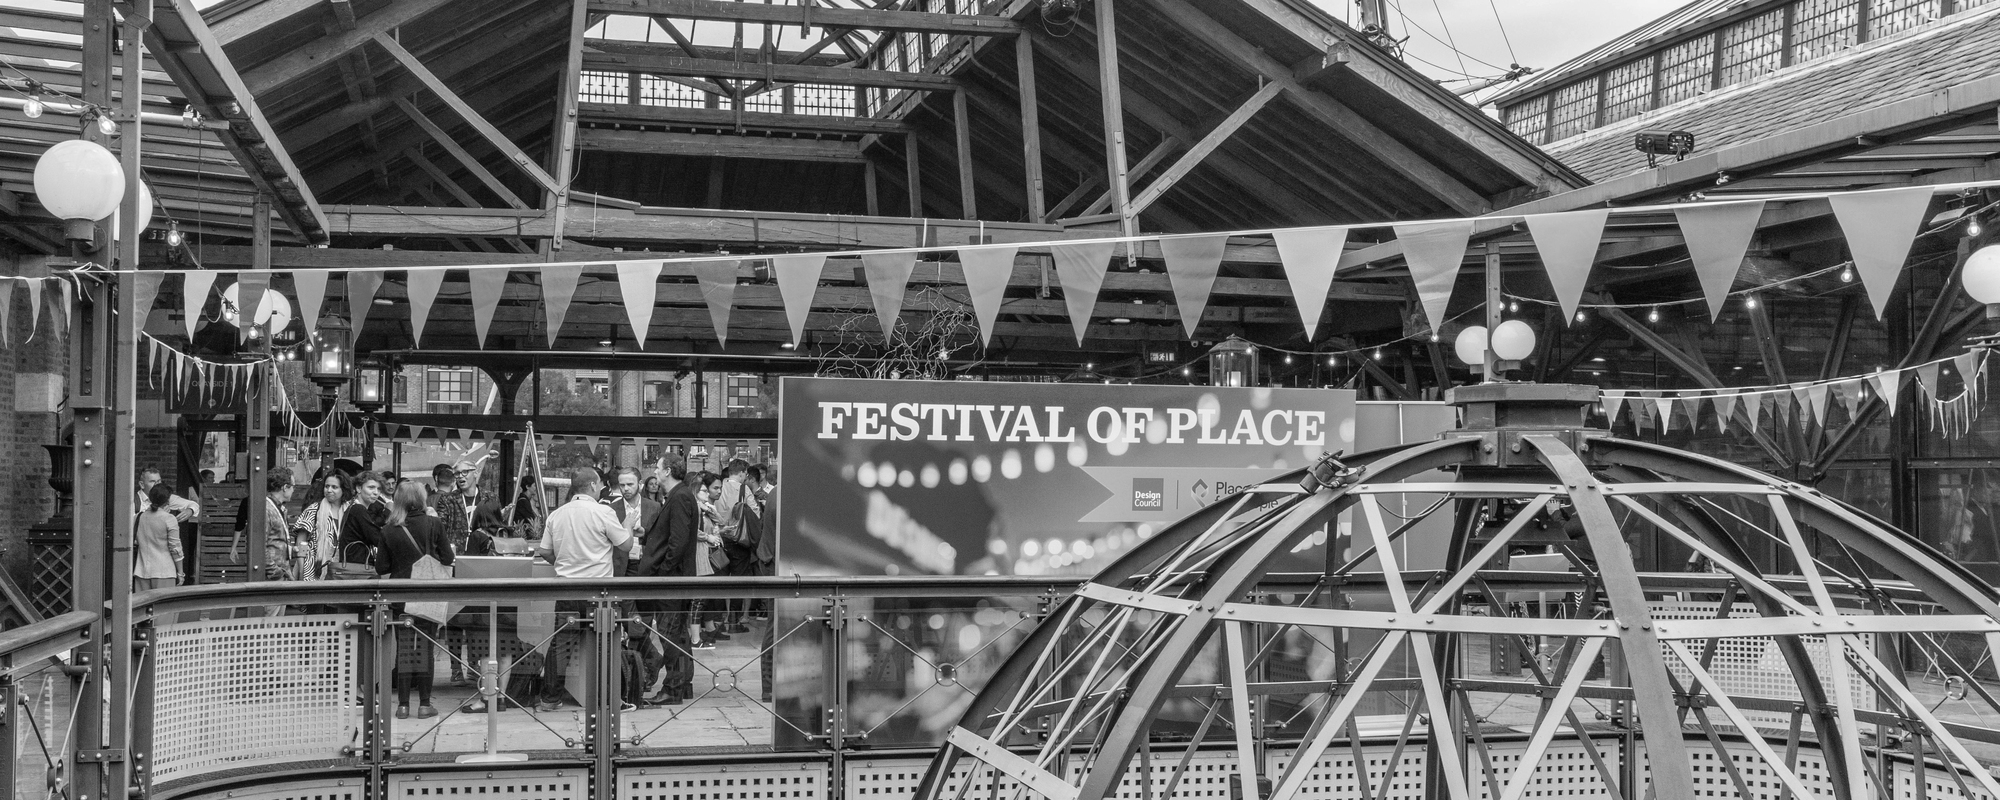 First speakers announced for Festival of Place 2020